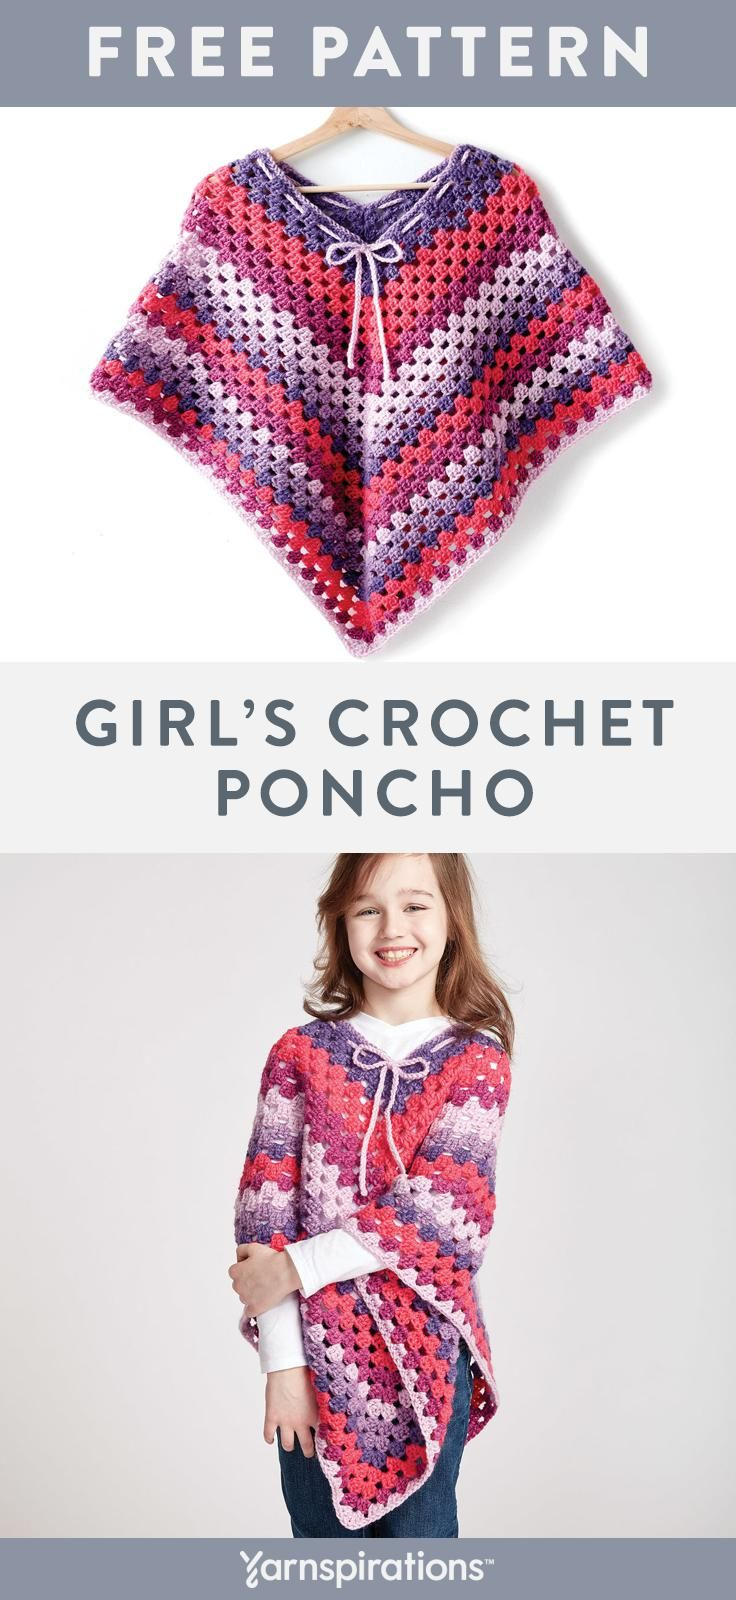 Free Easy Girl's Crochet Poncho Pattern | Bernat Pop! features 5 distinct shades to create beautiful color transitions effortlessly. This comfy poncho cascades with a lovely drape that moves as she does, making it a stylish essential for any young fashionista. #Yarnspirations #Bernat #BernatPop #FreeCrochetPattern #Crochet #crochetponchokids